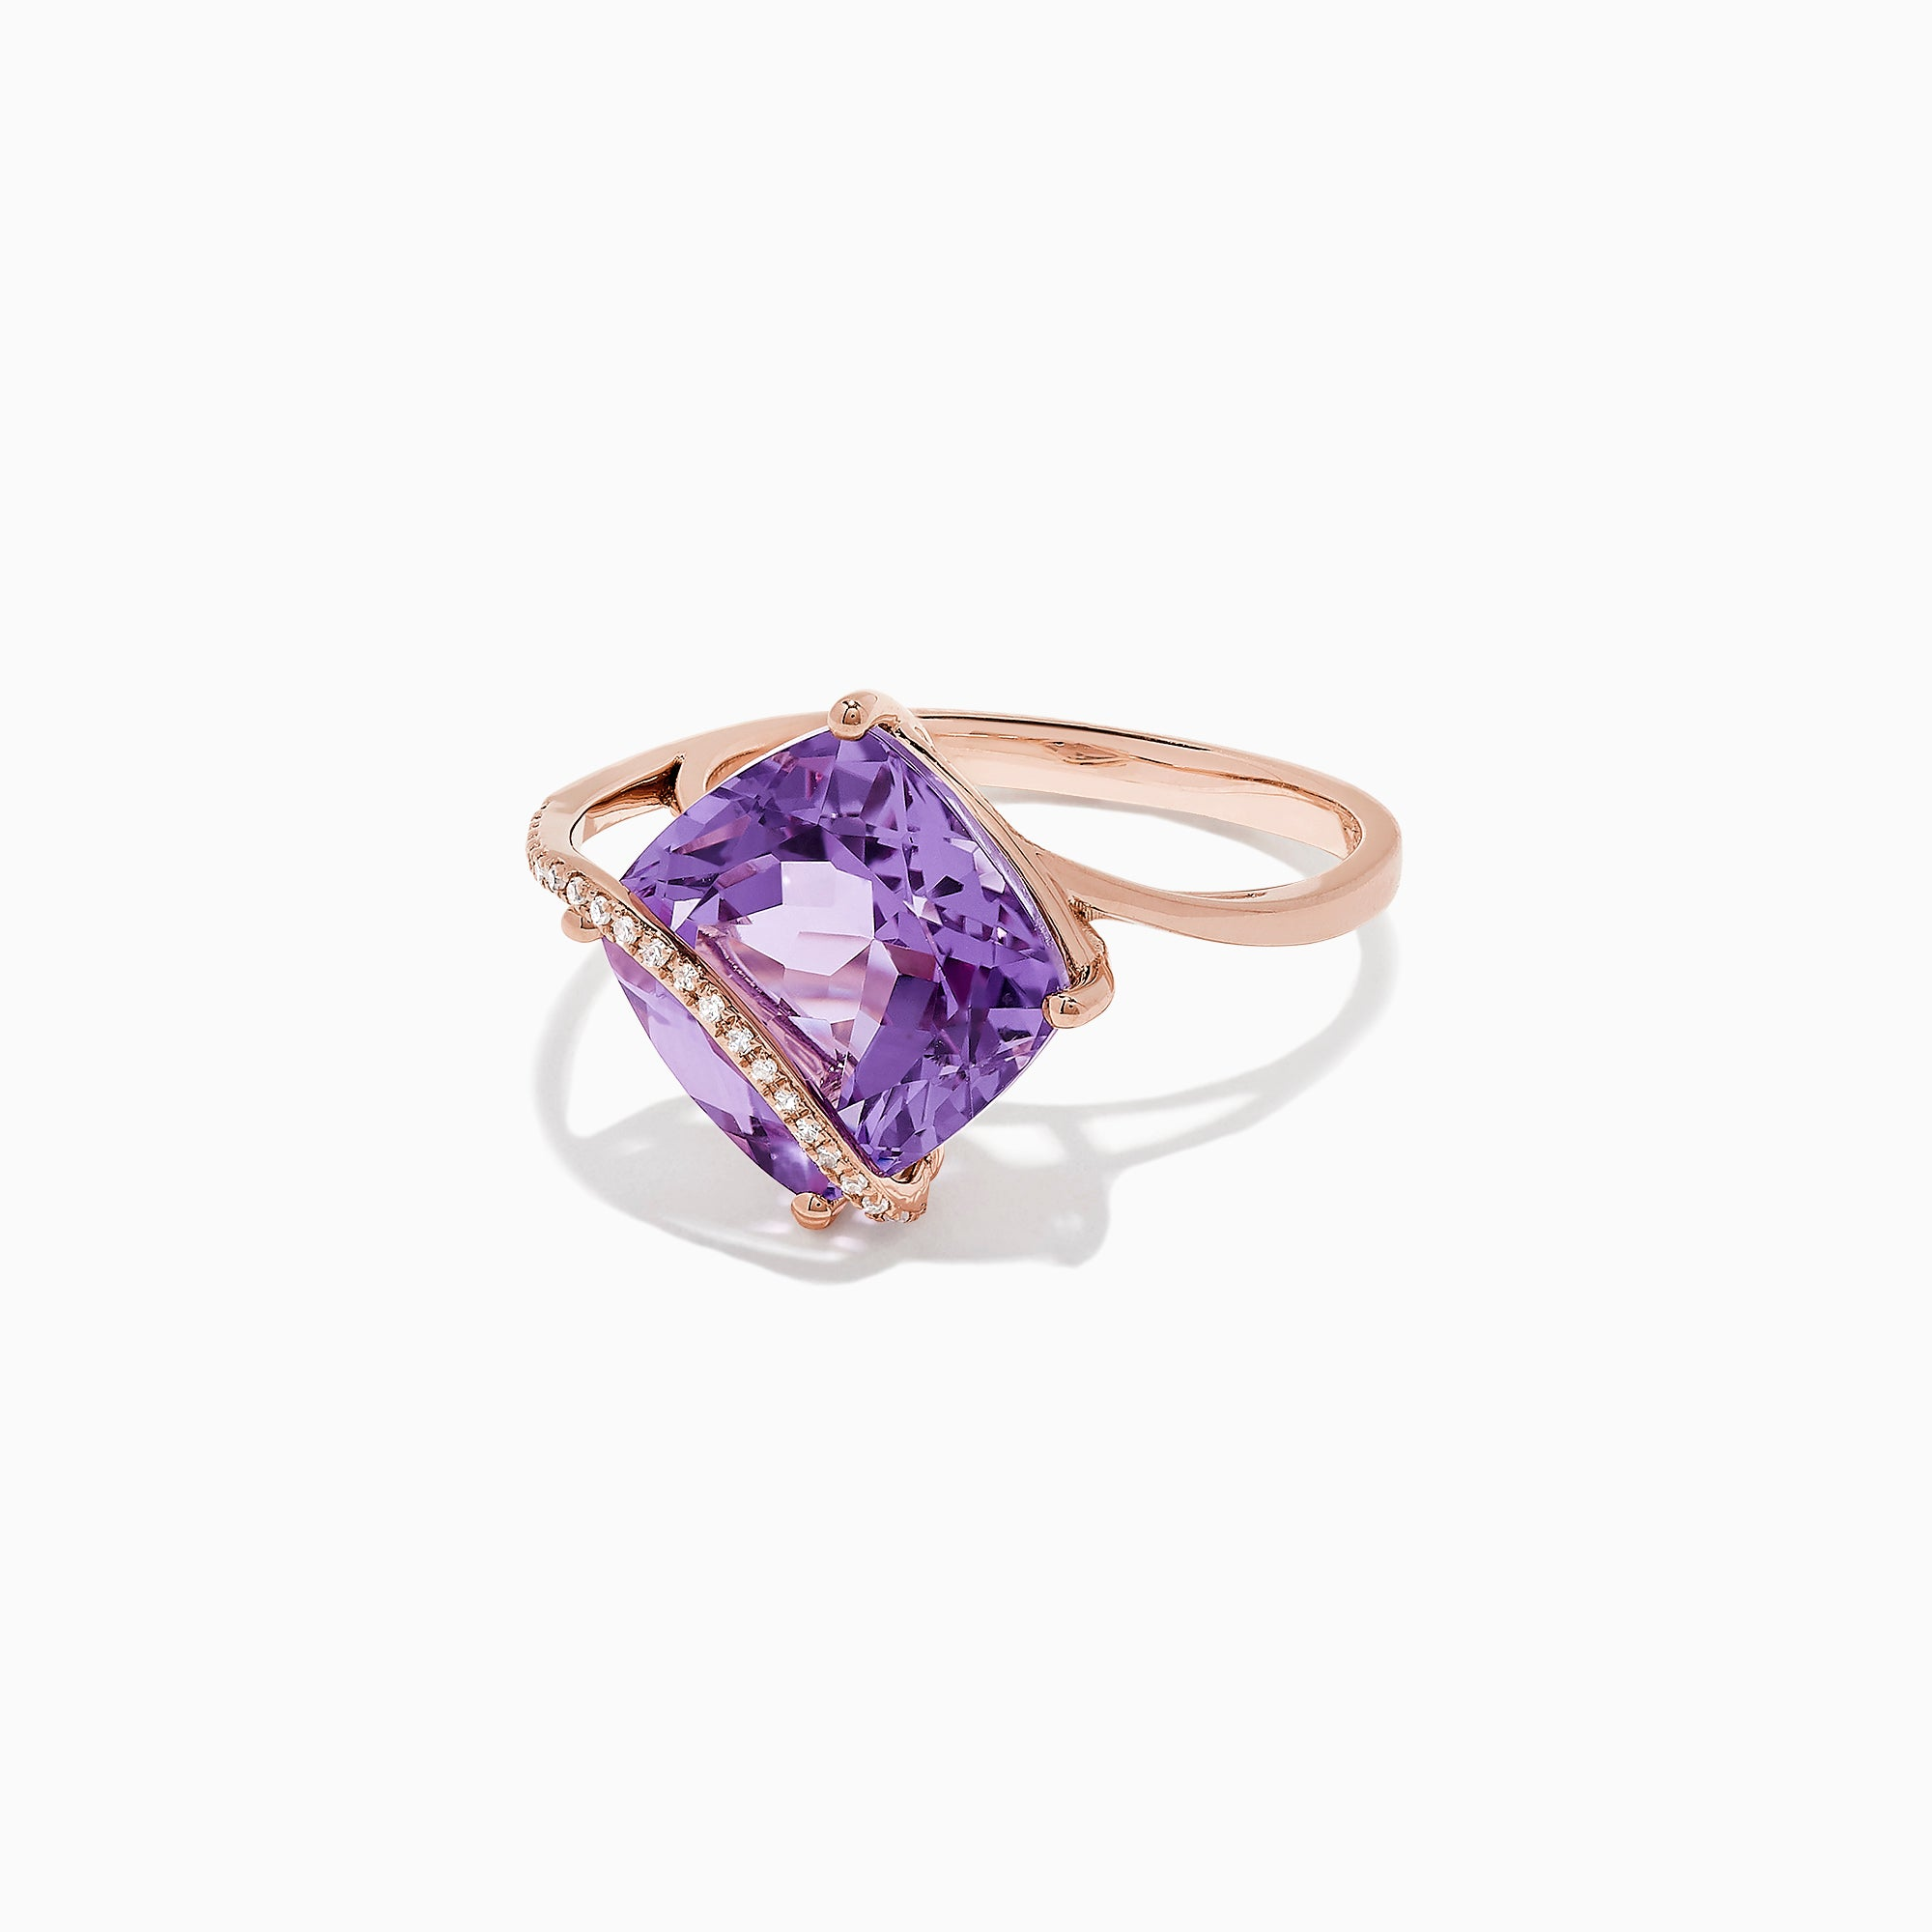 Effy 14K Rose Gold Amethyst and Diamond Ring, 6.33 TCW